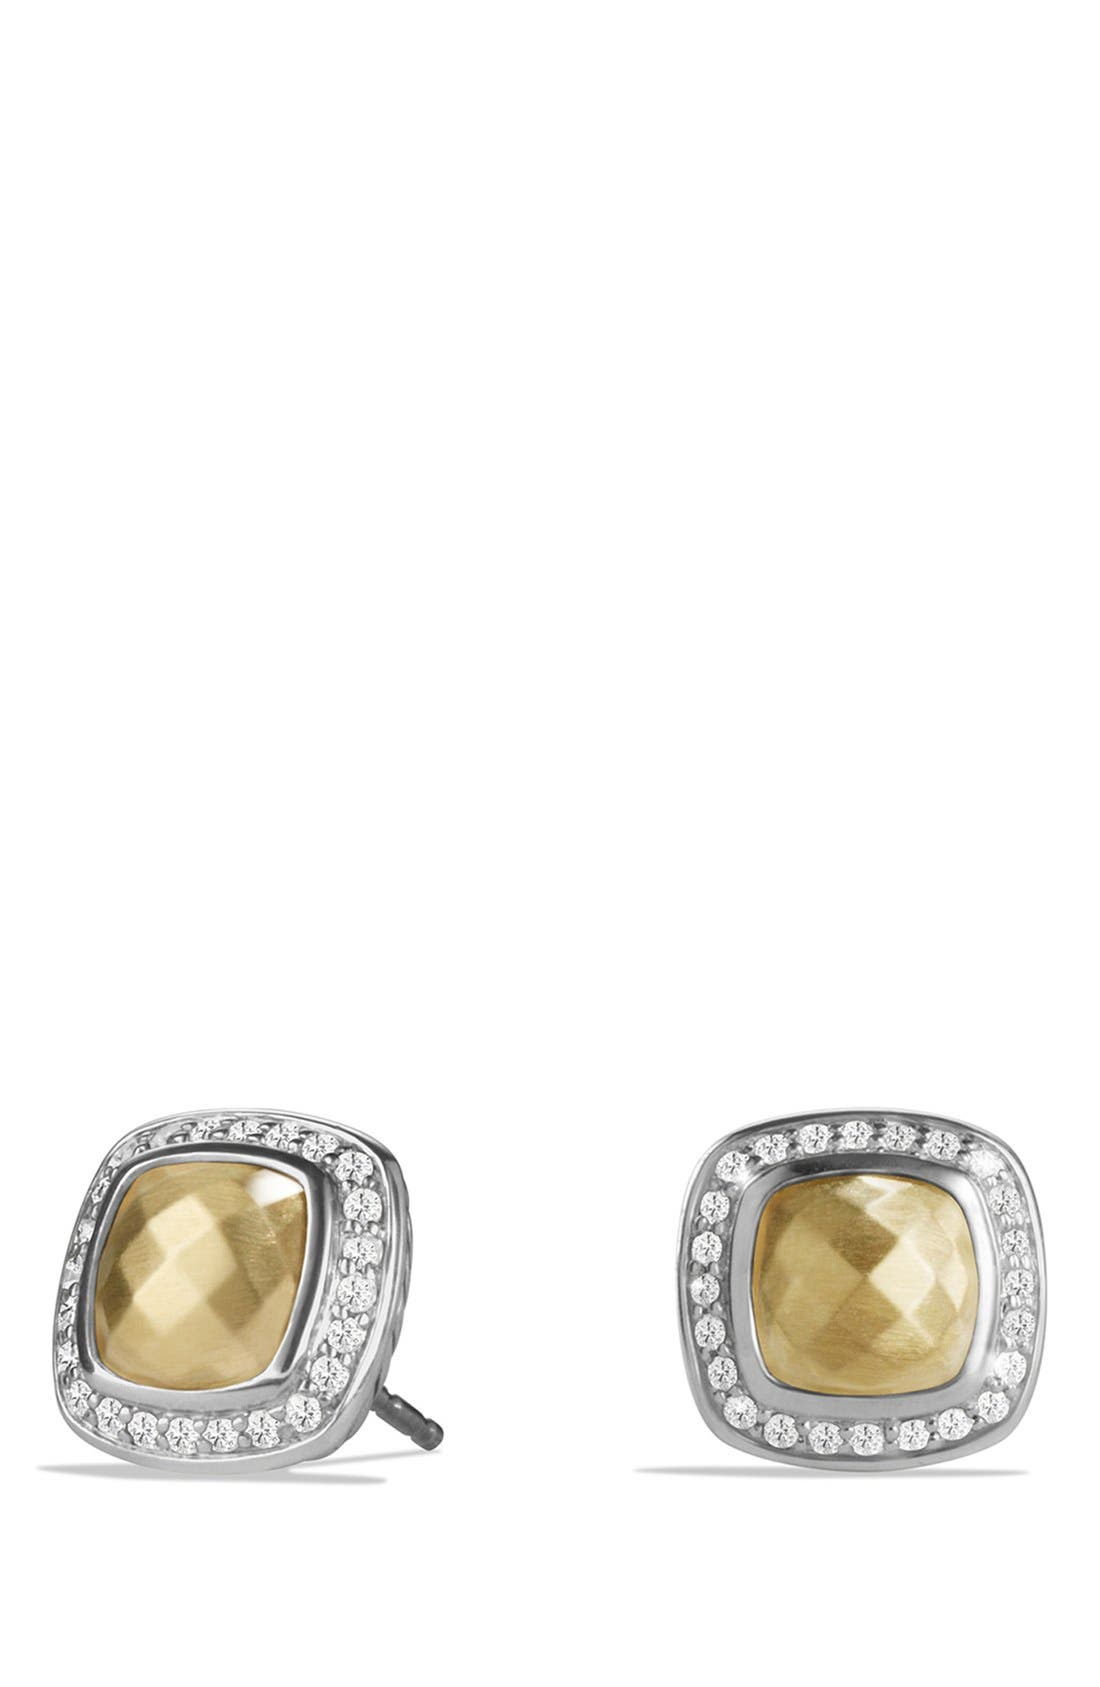 Alternate Image 1 Selected - David Yurman 'Albion' Earrings with 18K Gold Dome and Diamonds